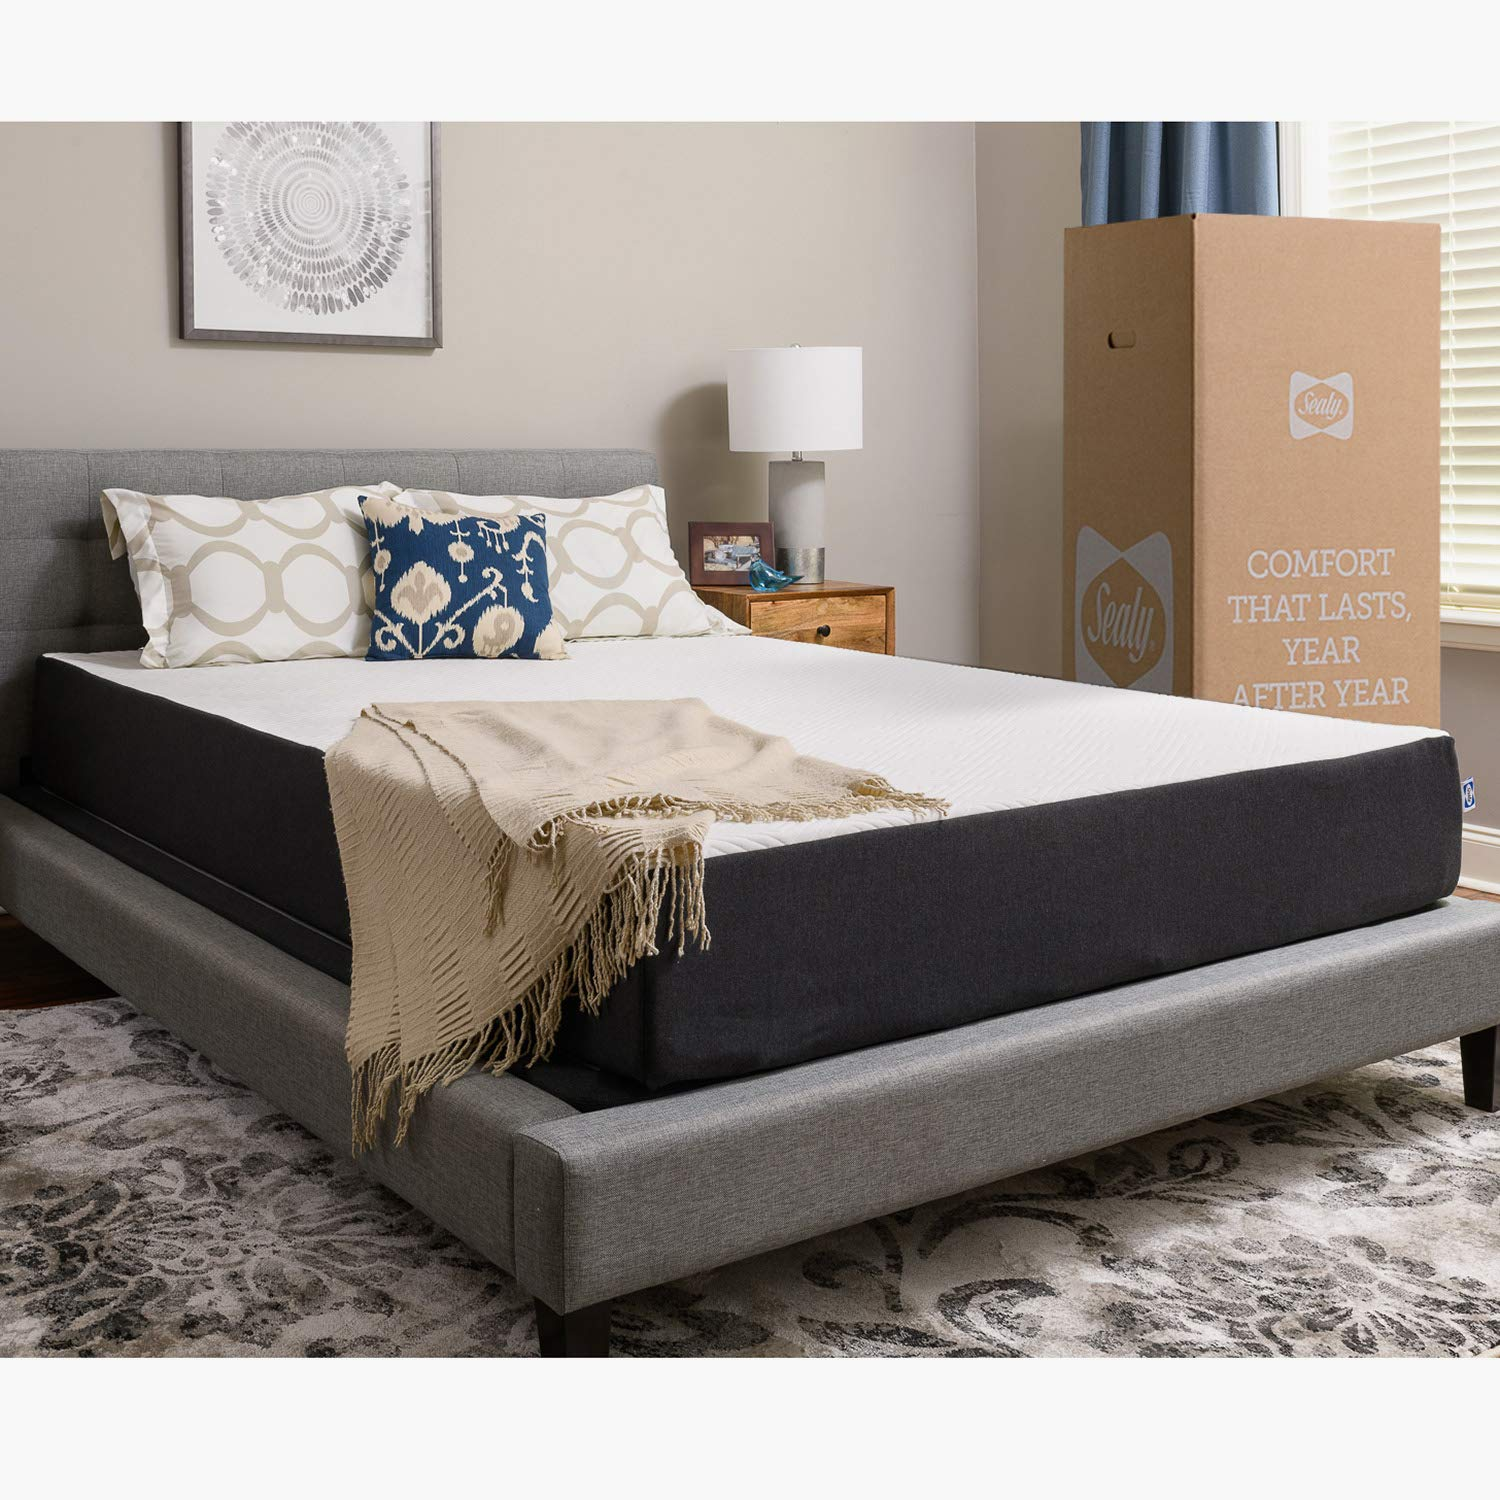 Sealy, 10-Inch, Memory Foam bed in a box, Adaptive Comfort Layers, Medium-Firm Feel, King by Sealy